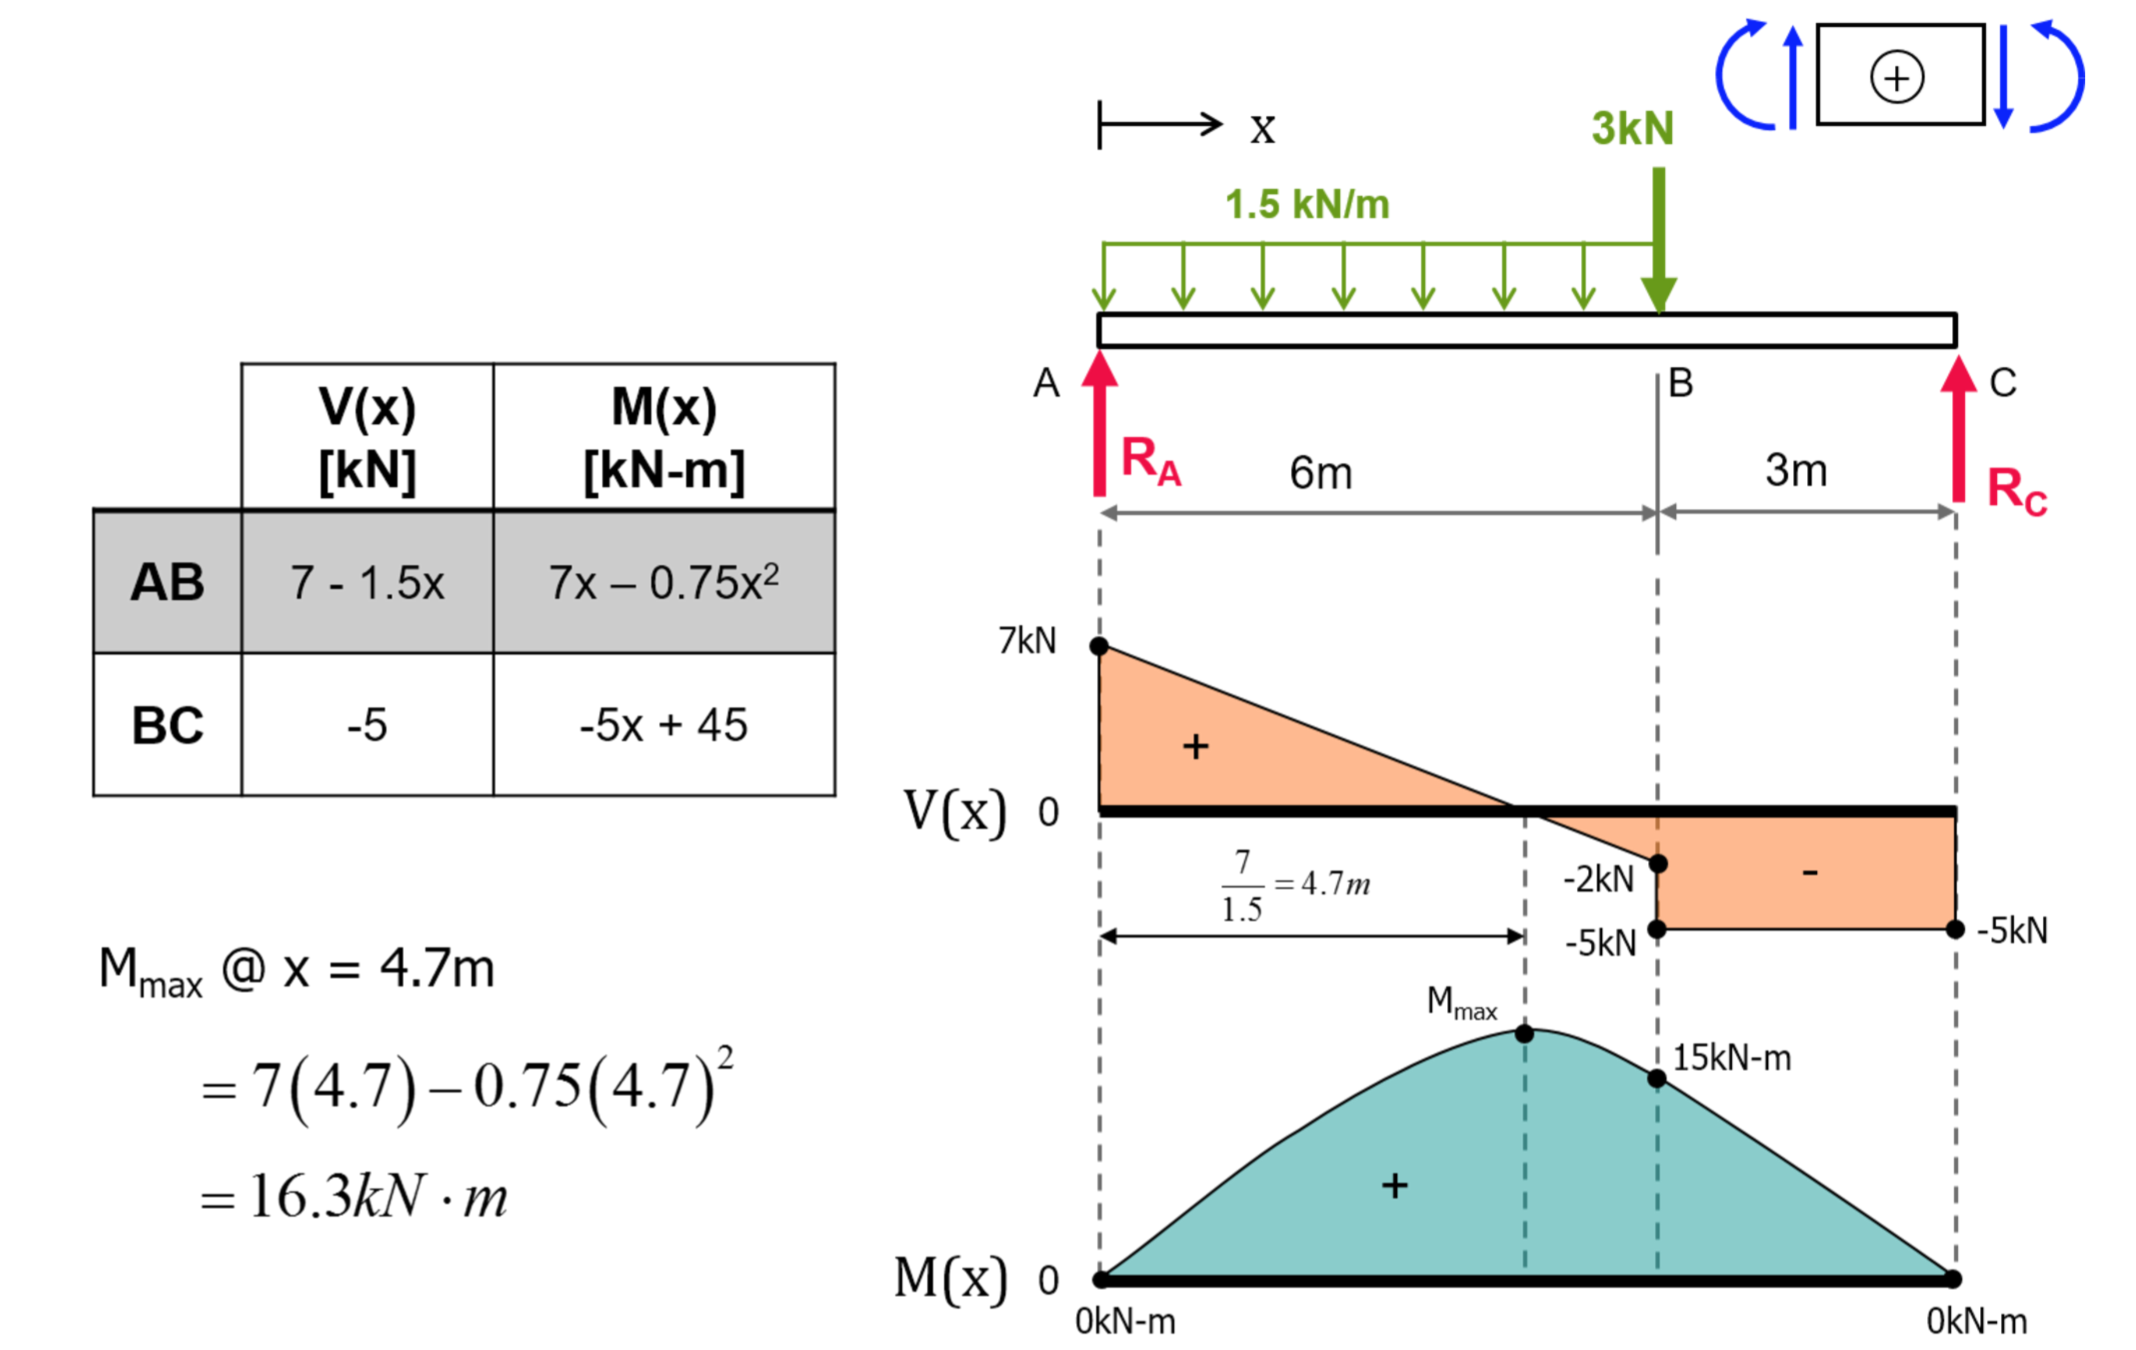 exercise shear force bending moment diagrams solution tu rh ocw tudelft nl bending moment diagrams for beams bending moment diagrams calculator